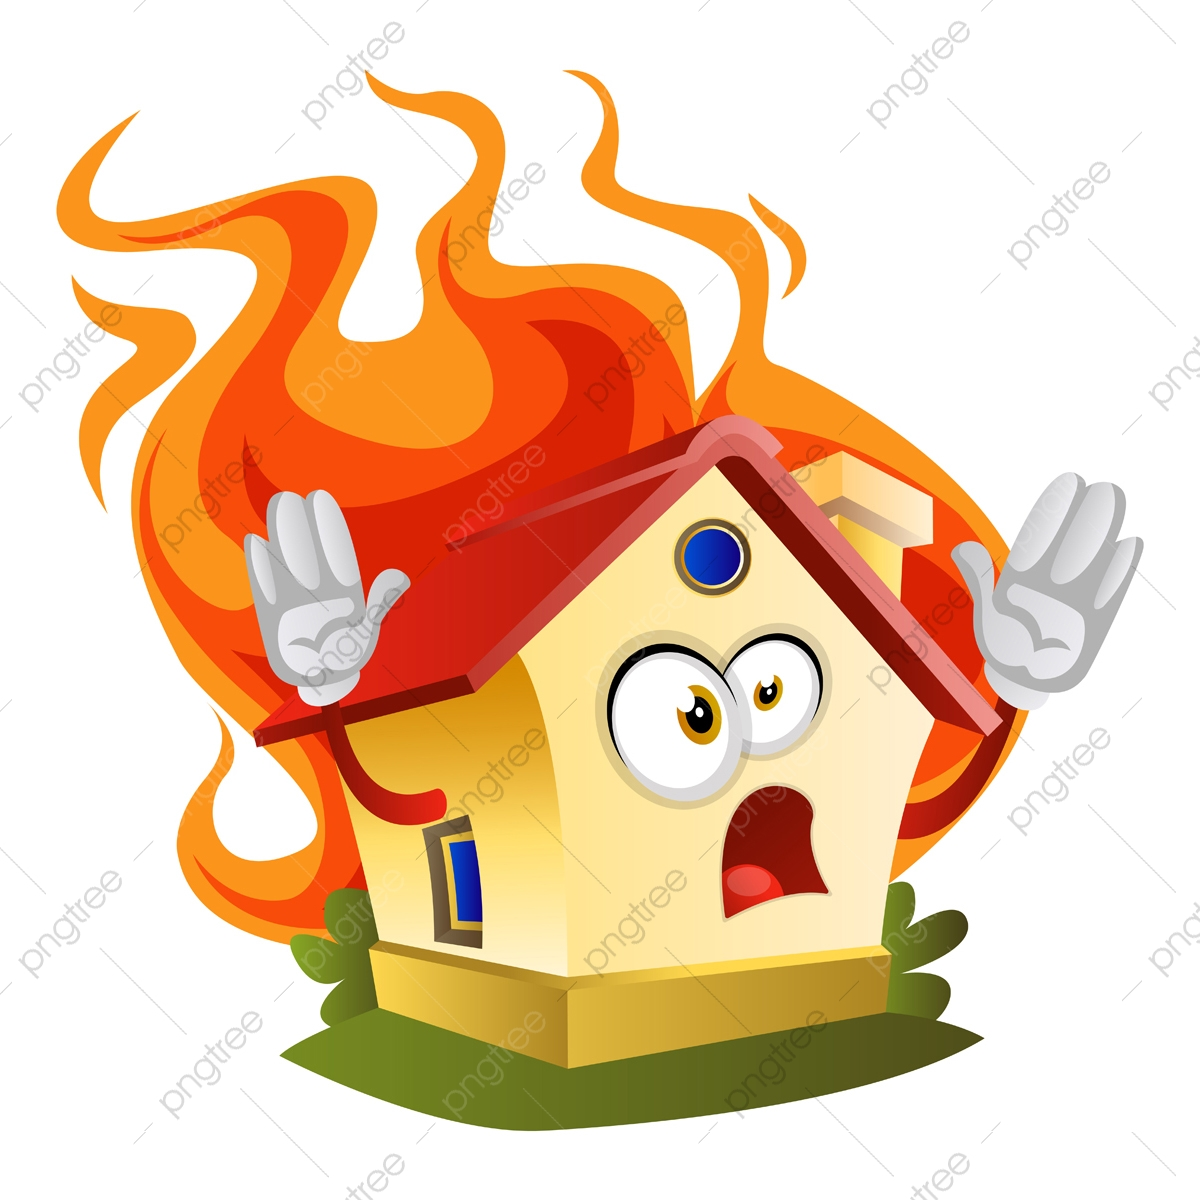 House On A Fire Illustration Vector On White Background House Pictogram Icon Png And Vector With Transparent Background For Free Download